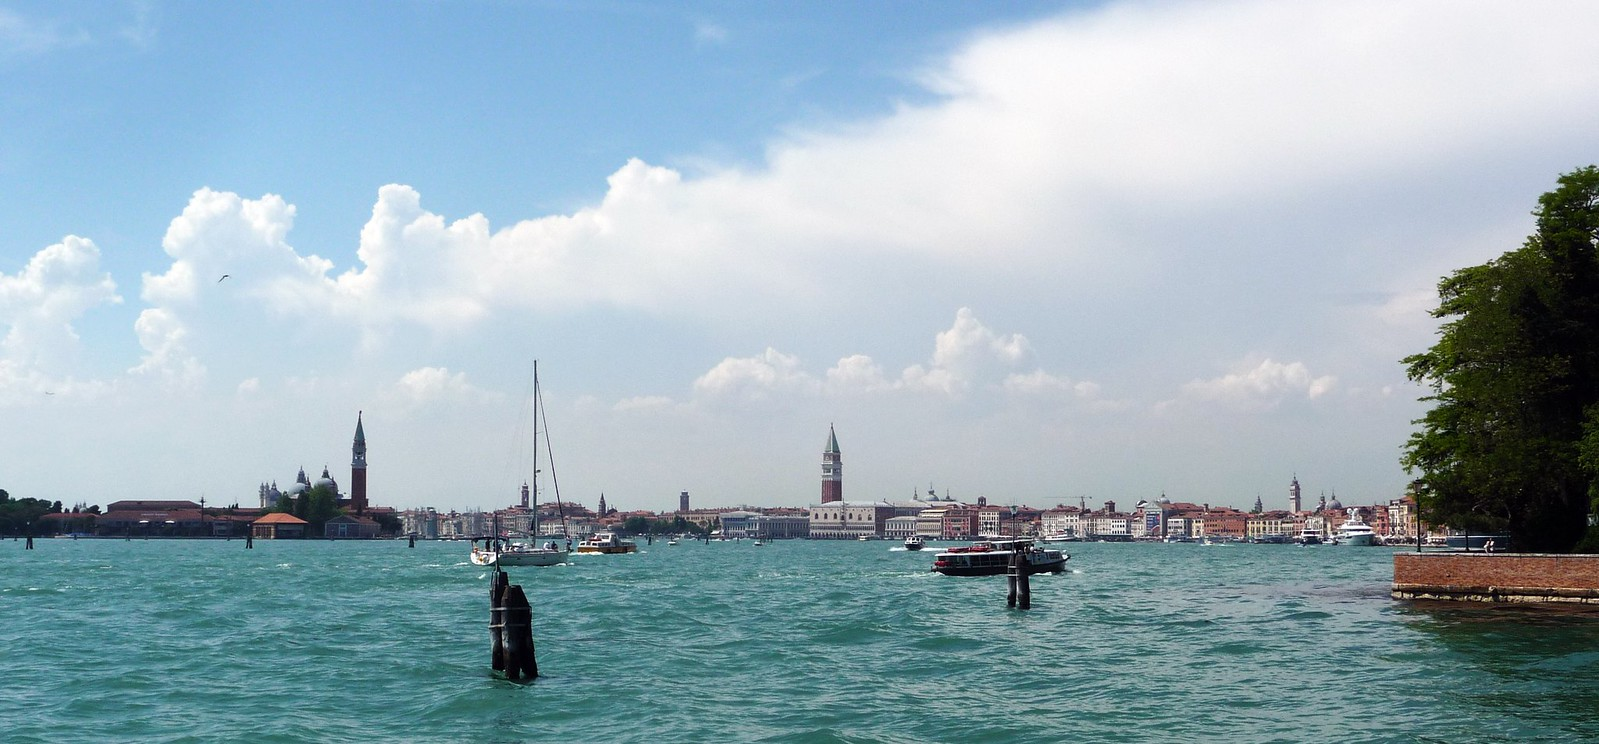 #16: Taking the backwaters to Venice